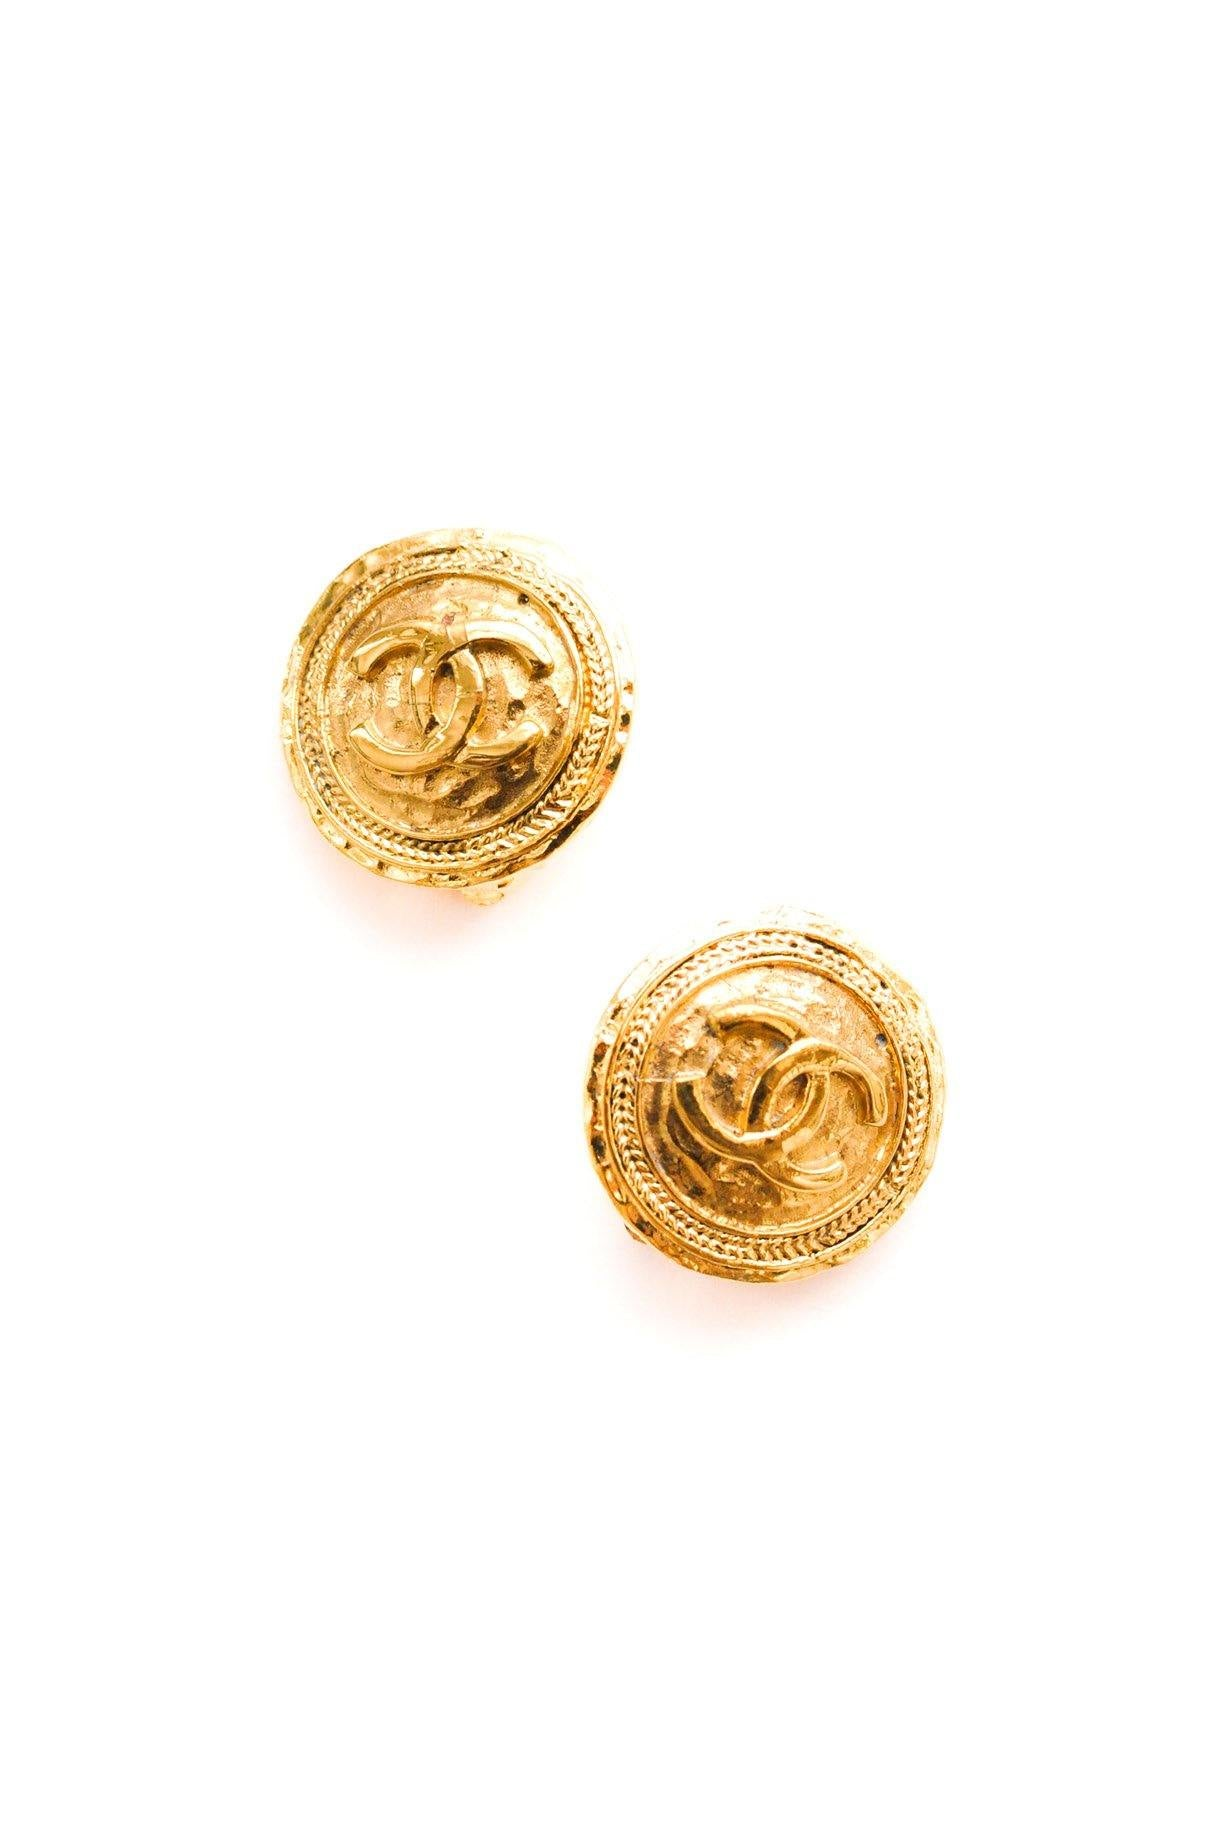 Chanel Coin Clip-on Earrings